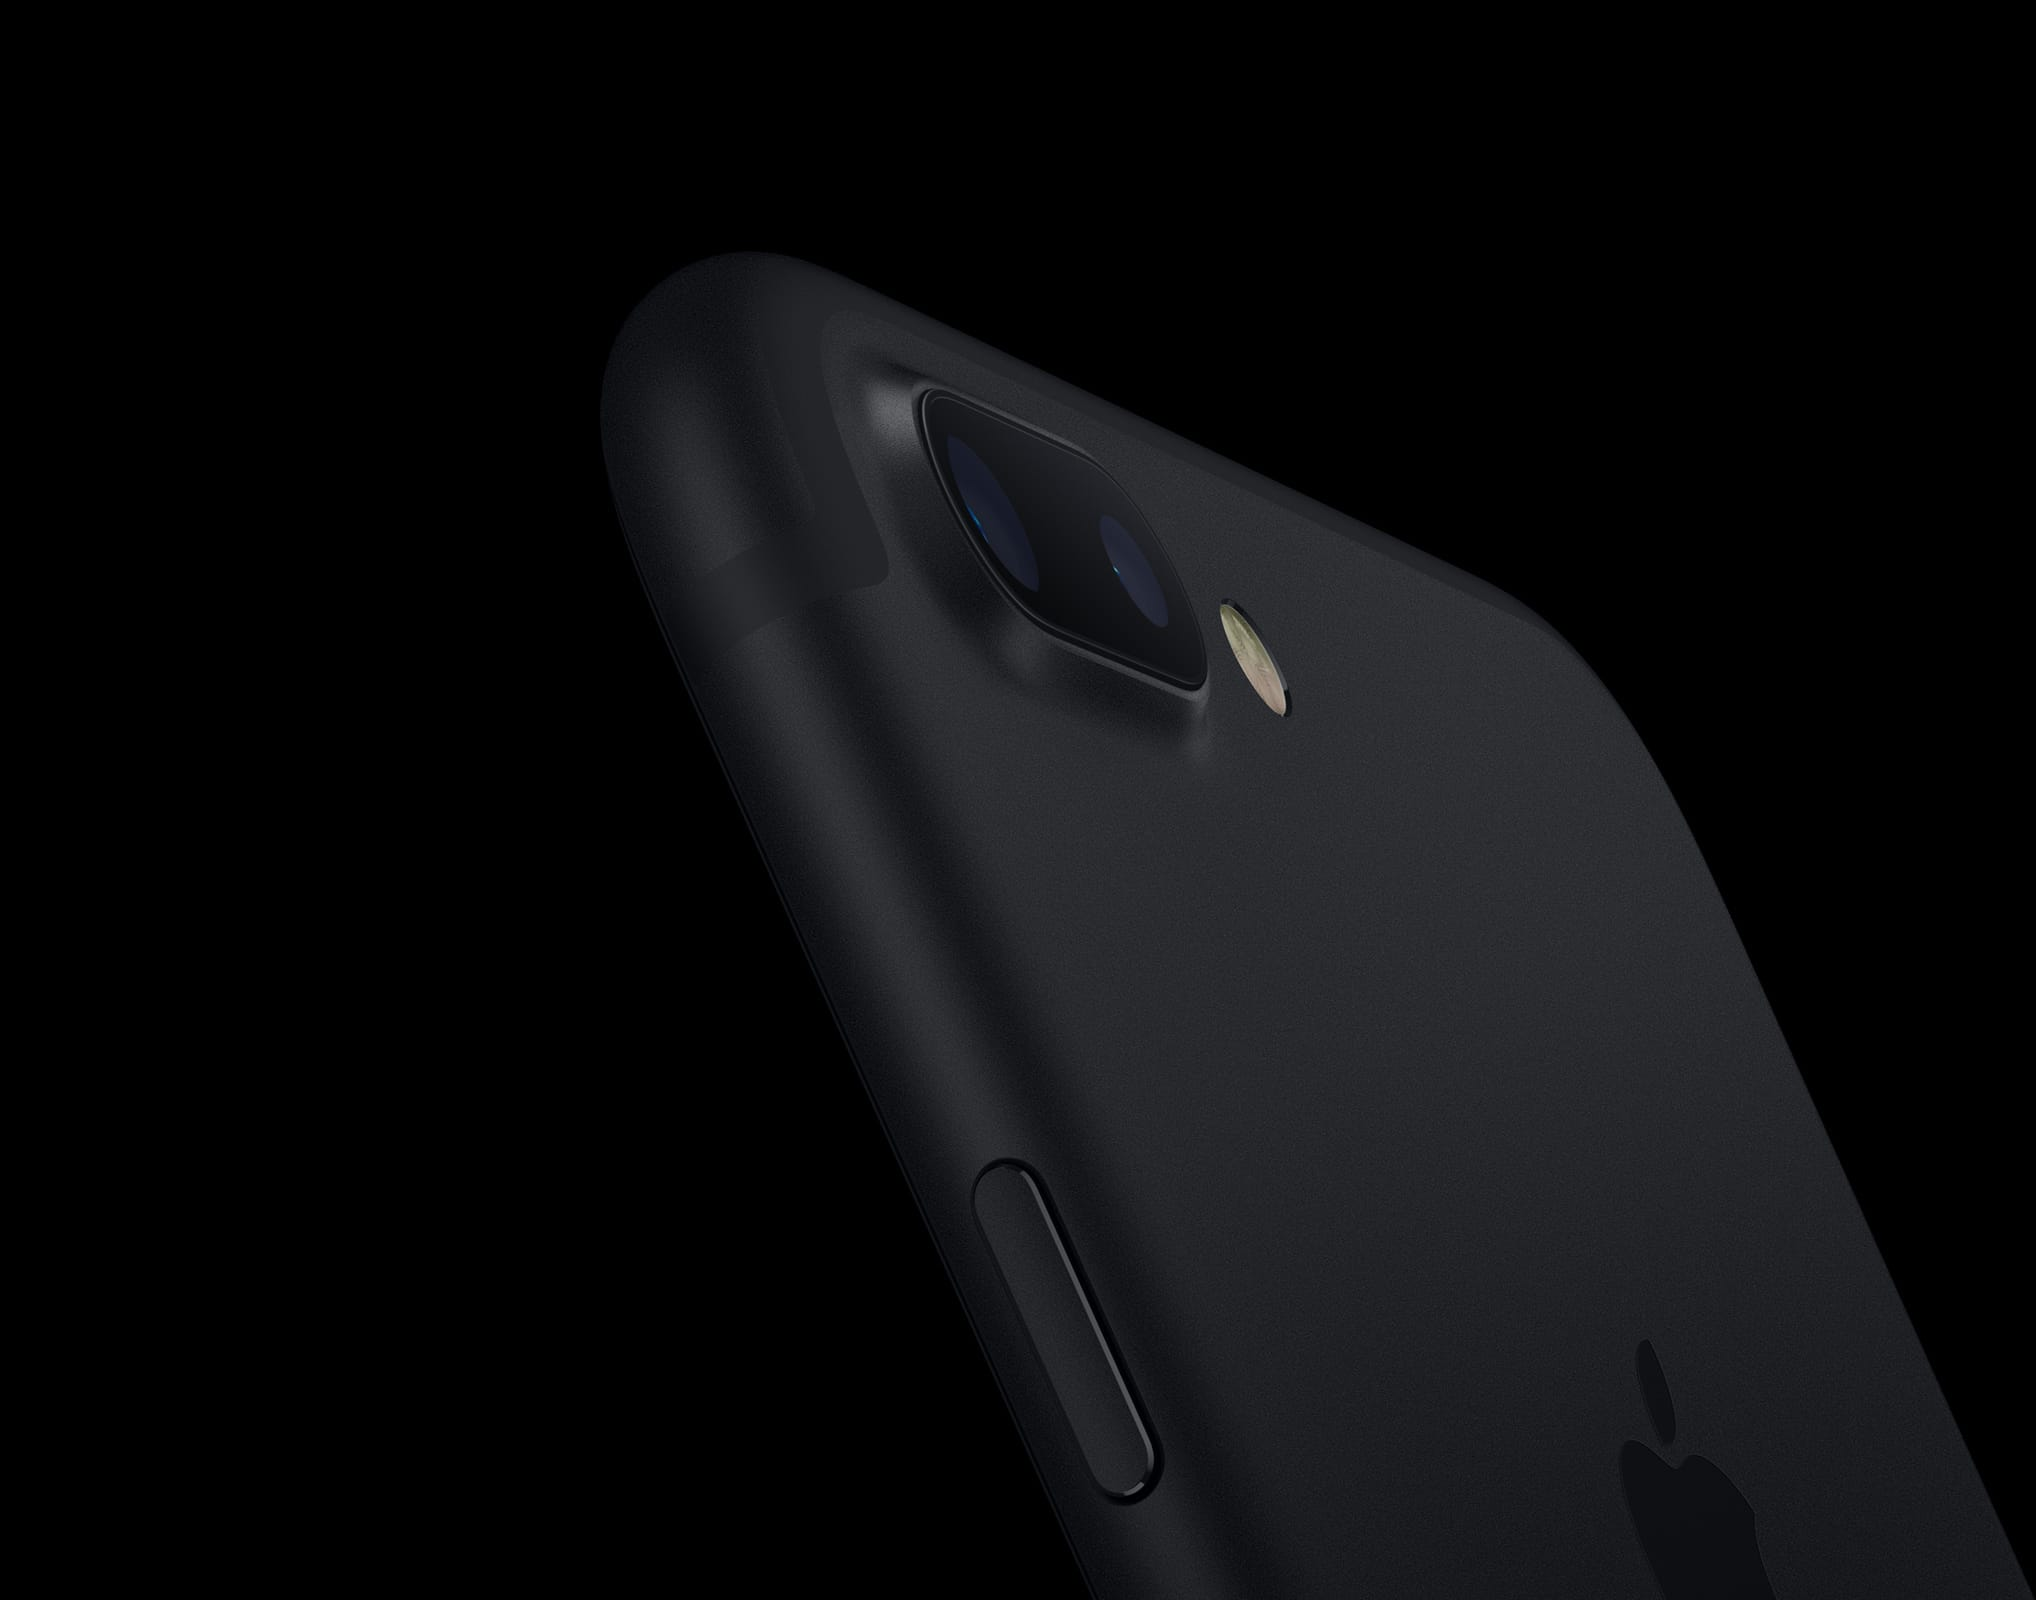 iphone-7-black-side-hero